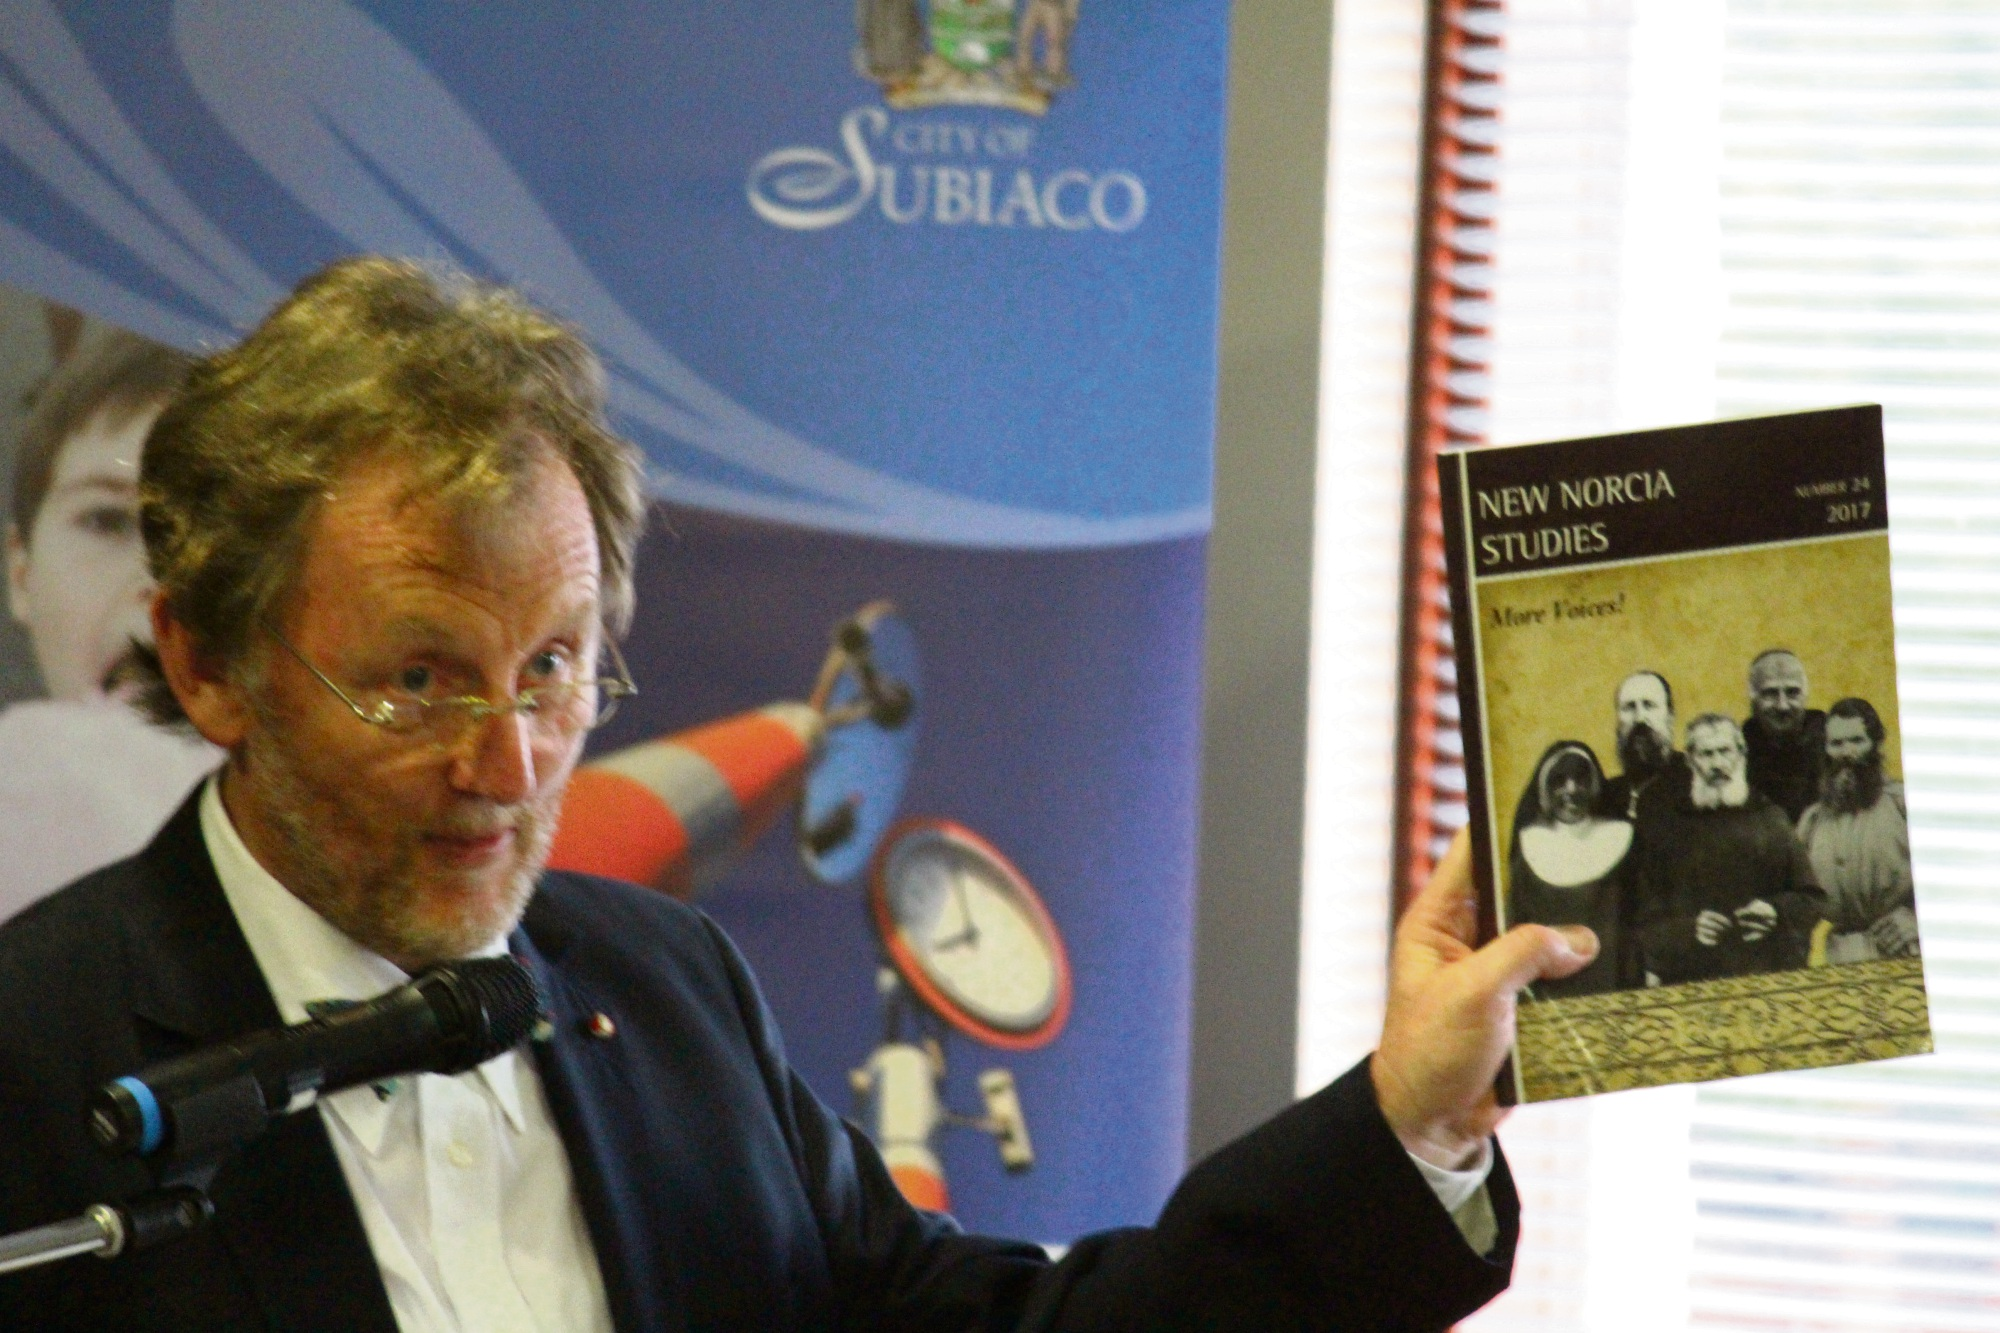 John Kinder launches the latest New Norcia Studies journal at the City of Subiaco's Palms Community Centre.